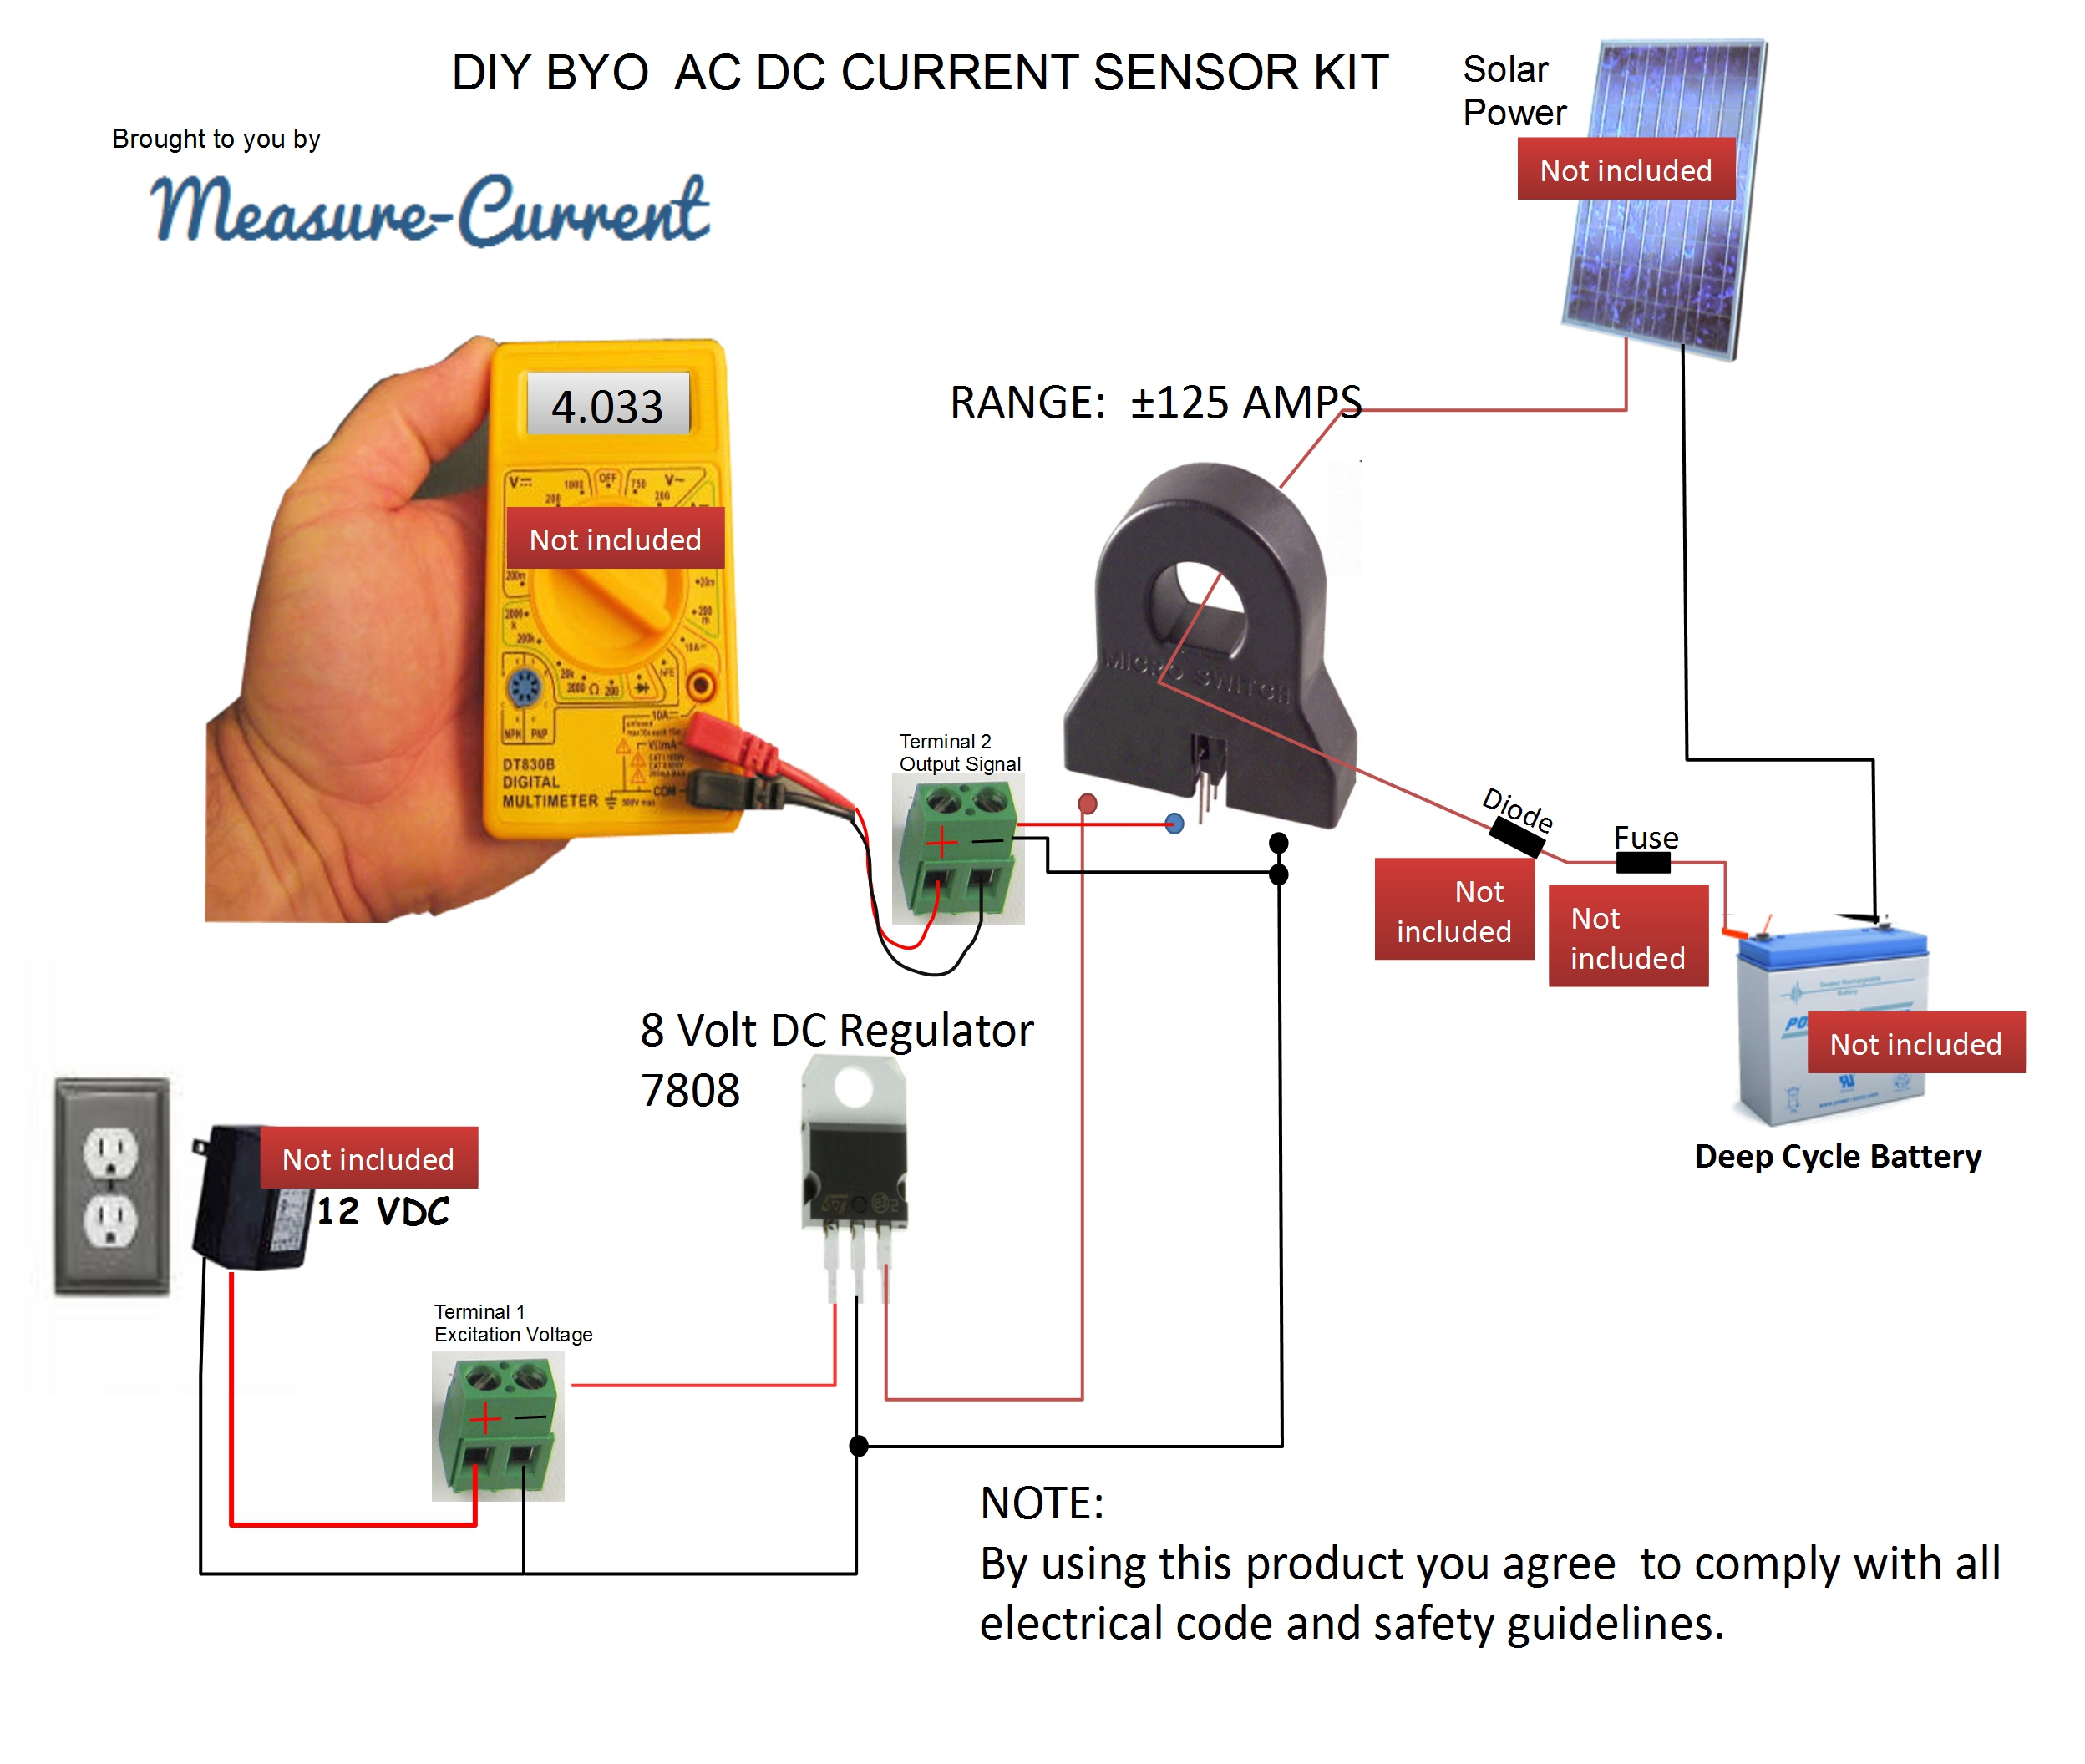 DIY BYO Do It Yourself AC DC Hall Effect Current Sensor